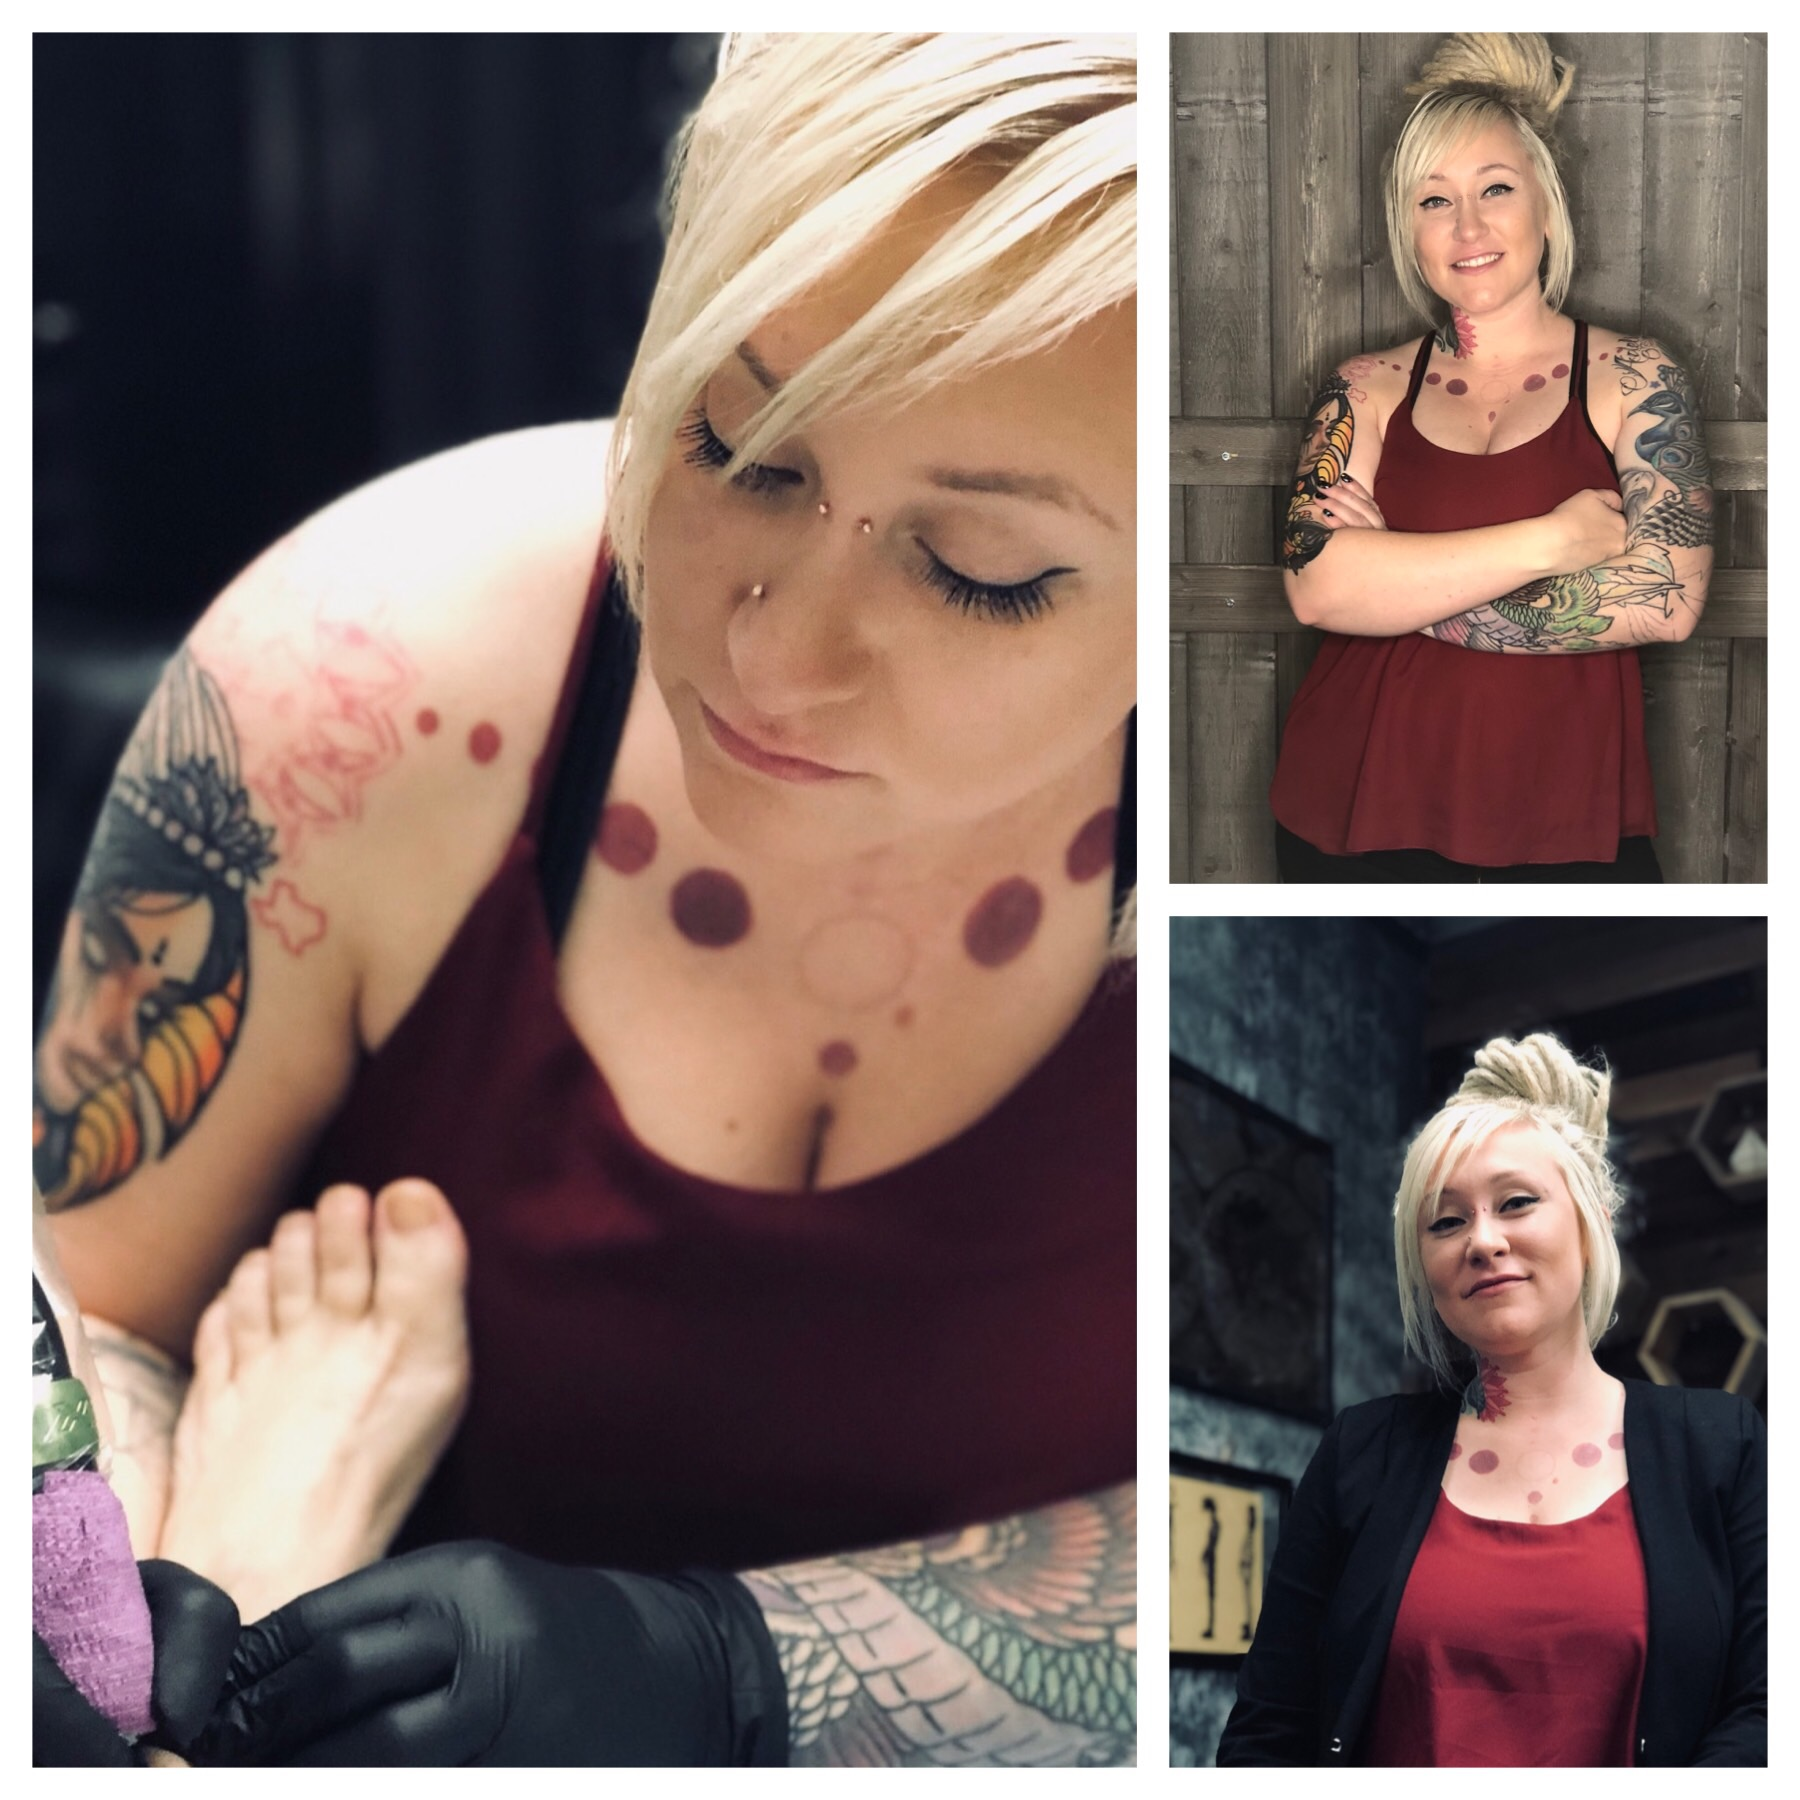 Mo Southern - Tattoo Dept ManagerMo Southern has been tattooing since 2006. She is a well rounded tattooer who can do most any style. Her specialties include black and grey realism, color realism, dotwork/mandalas, and watercolor.Published on VoyageLA and has been featured on many other online publications!Along with tattooing, her passions extend into the field of permanent cosmetics. As of 2017 she obtained her certification in Eyebrow Microblading. She also specializes in eyeliner tattooing and freckles.All tattoo pricing is done with an in-person consultation which can be booked online at mosouthern.com/schedule. For out of state clients please email at mmsouthern@gmail.com for booking.No consultation needed for permanent cosmetic procedures - click here for booking.